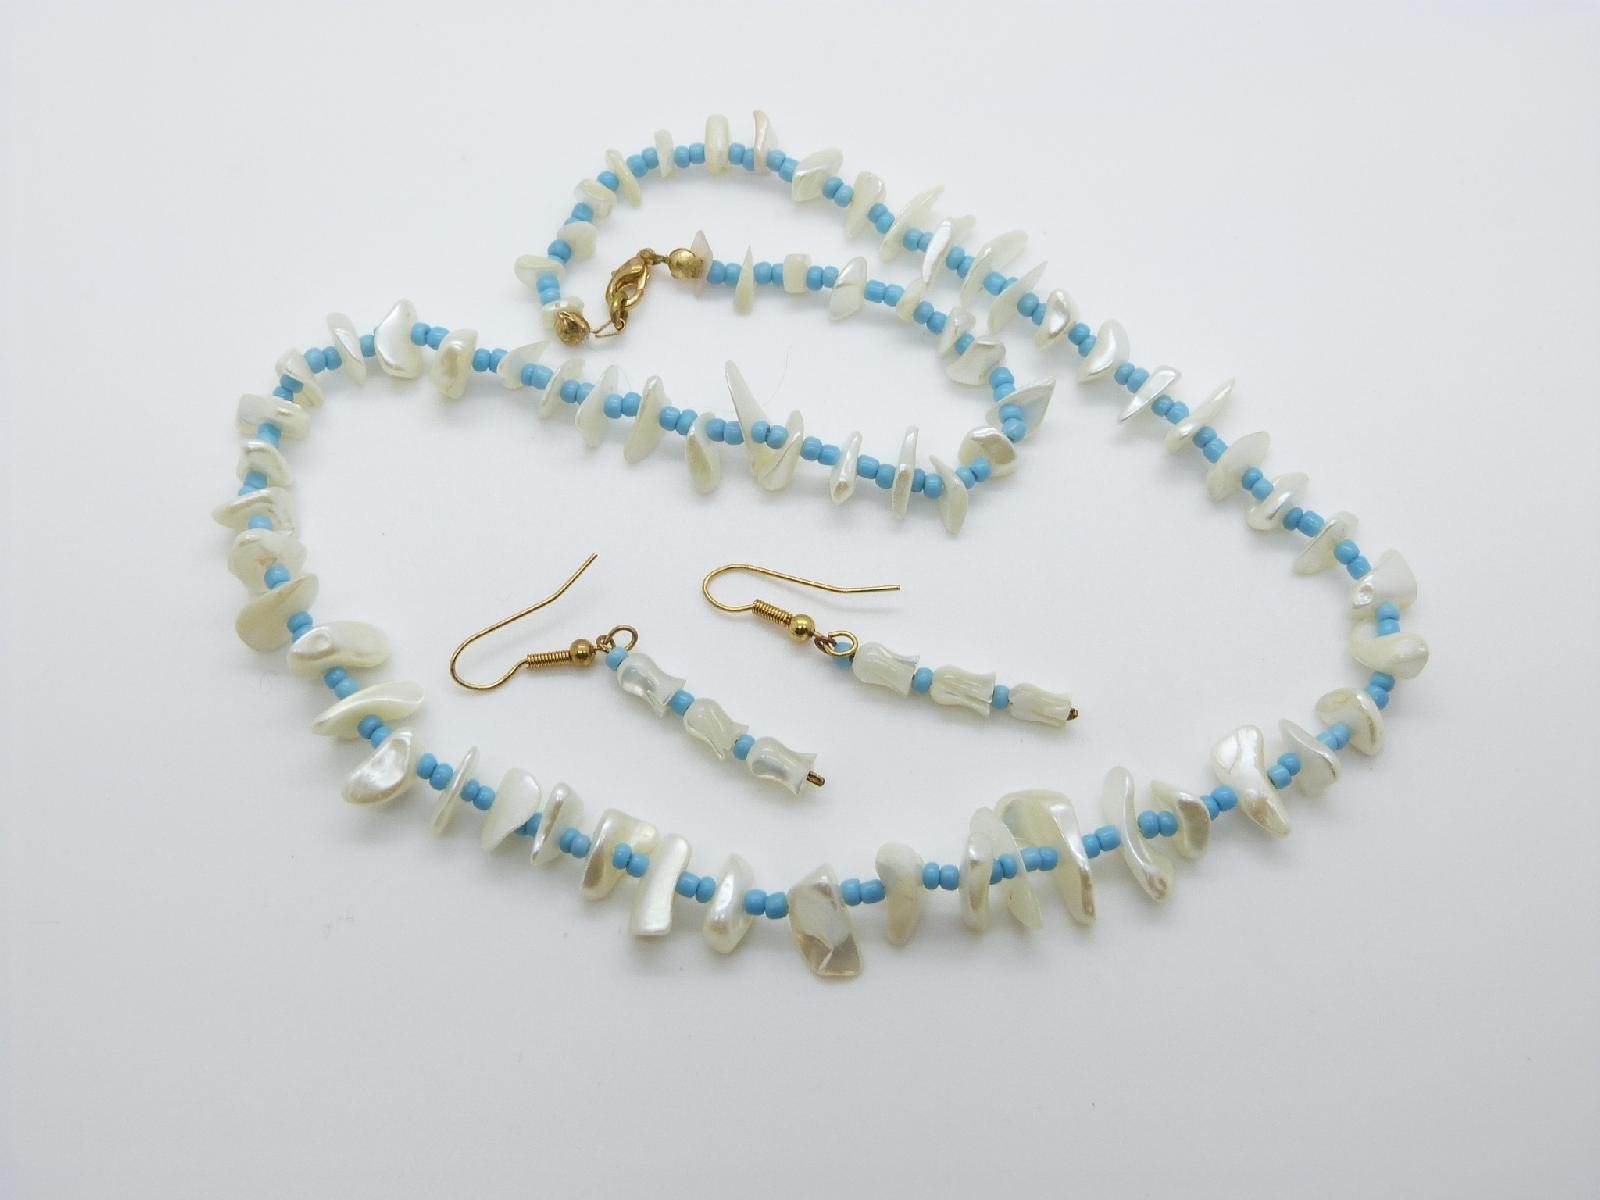 Lovely Mother of Pearl Chip and Glass Turquoise Bead Necklace and Earrings Set